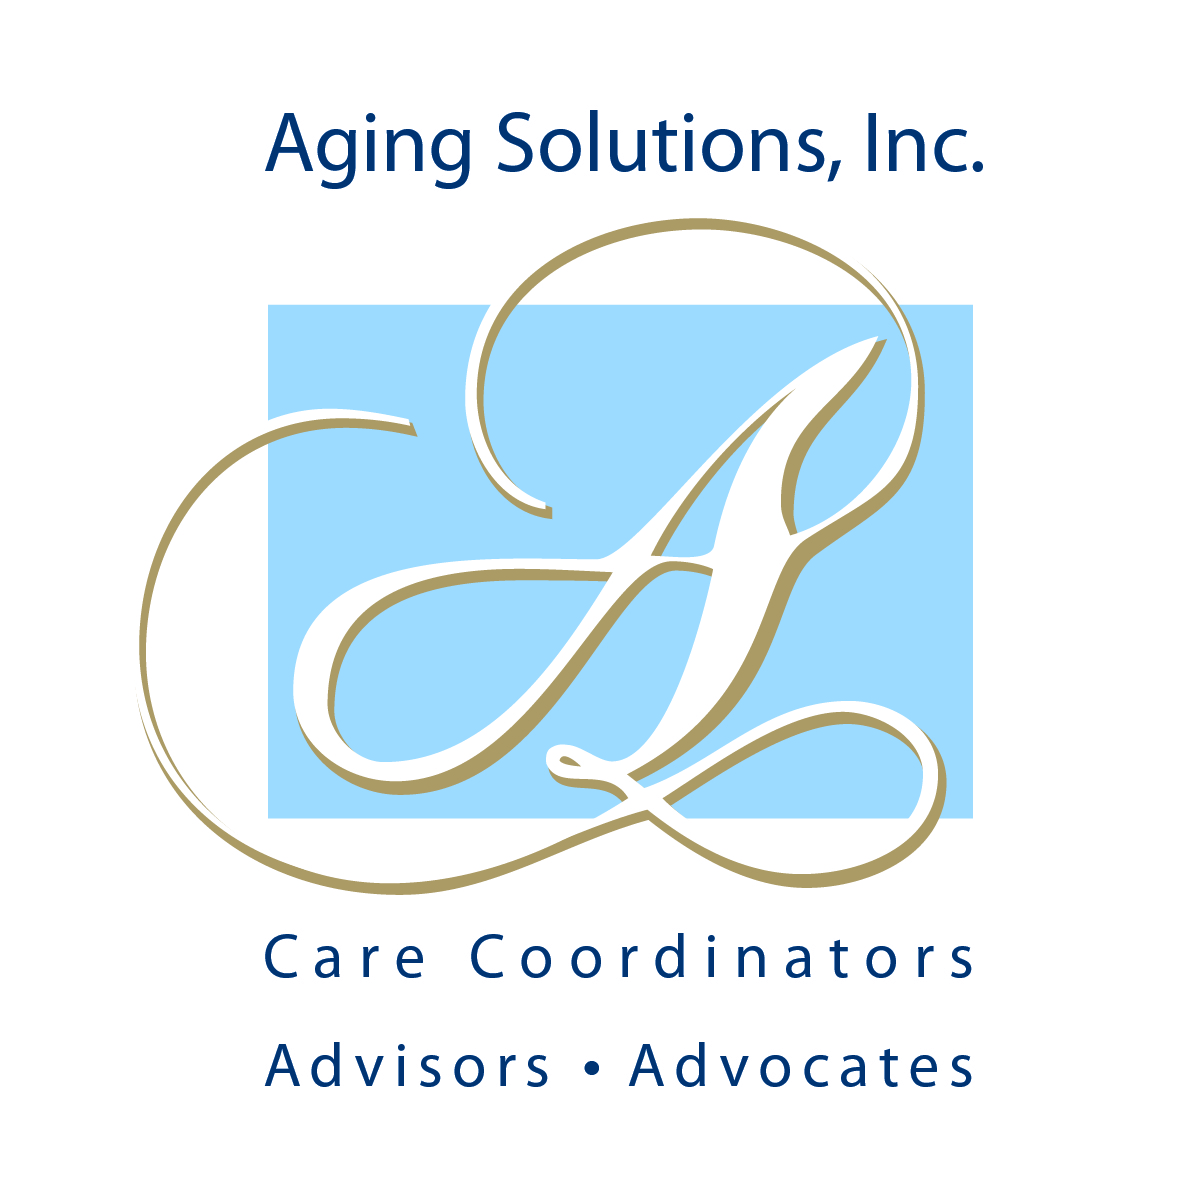 Aging Solutions, Inc. logo